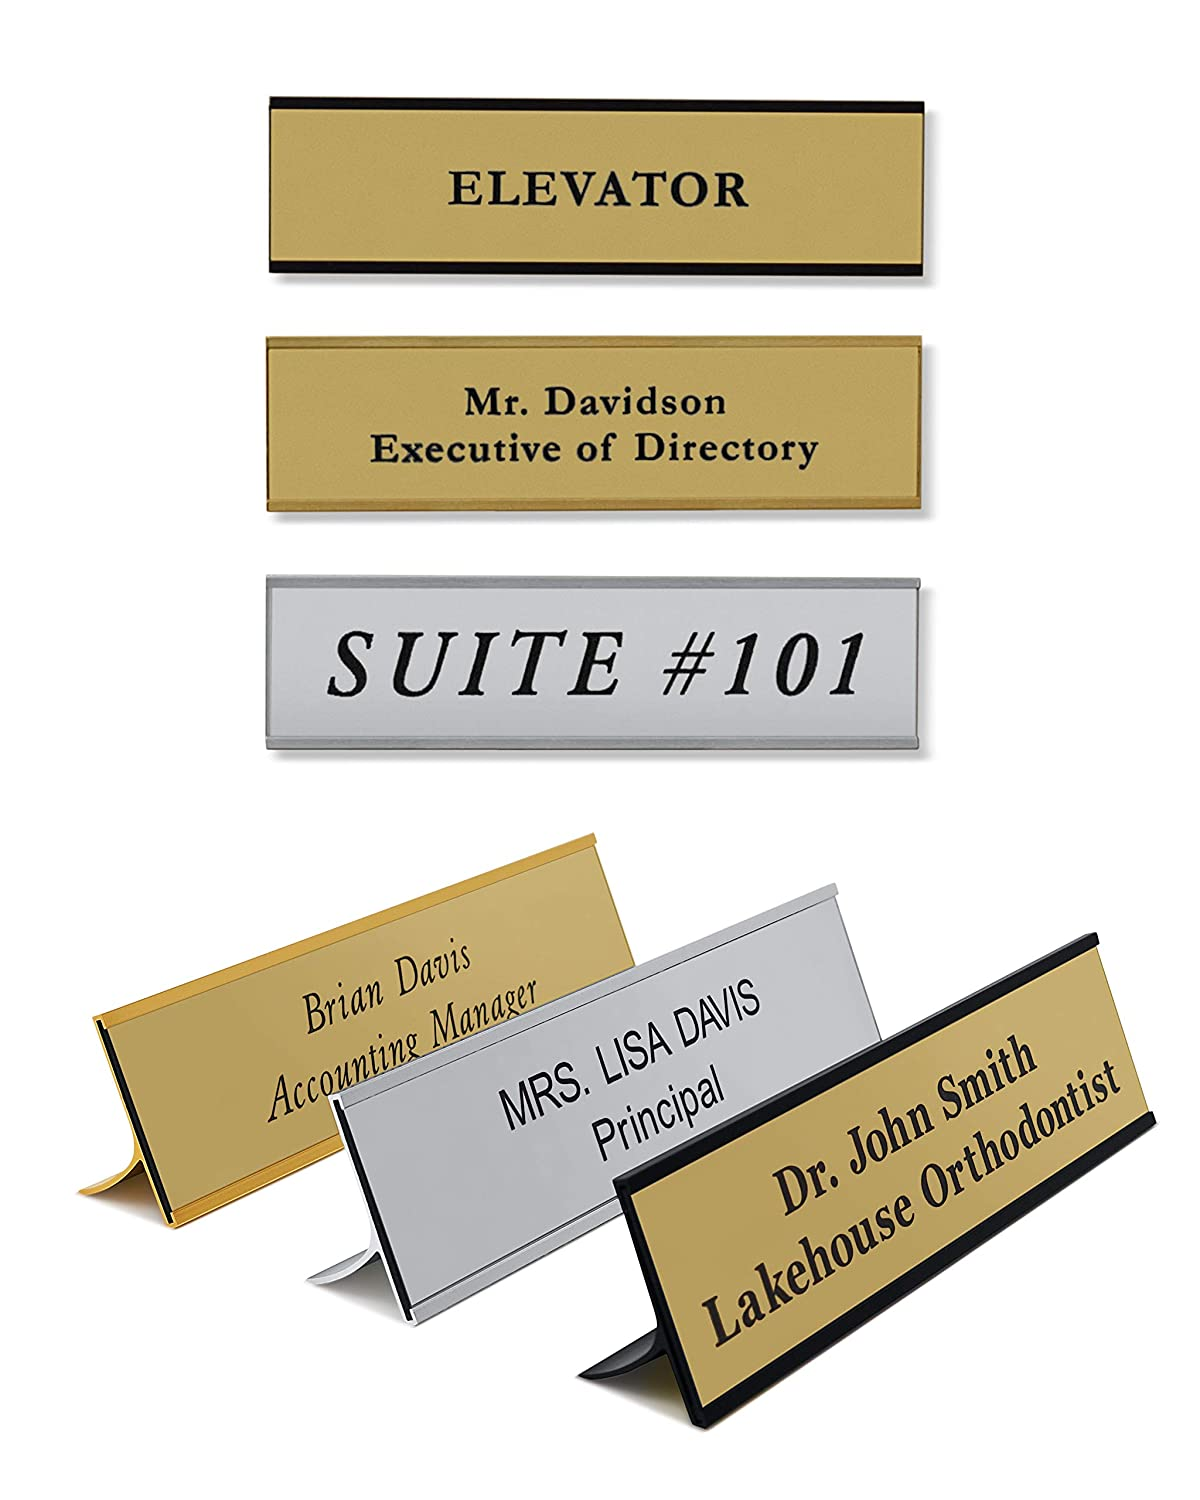 Name Plates for desks - Office Desk Name Plate Personalized with Desk or Wall Holder Customized Engraving 2x8